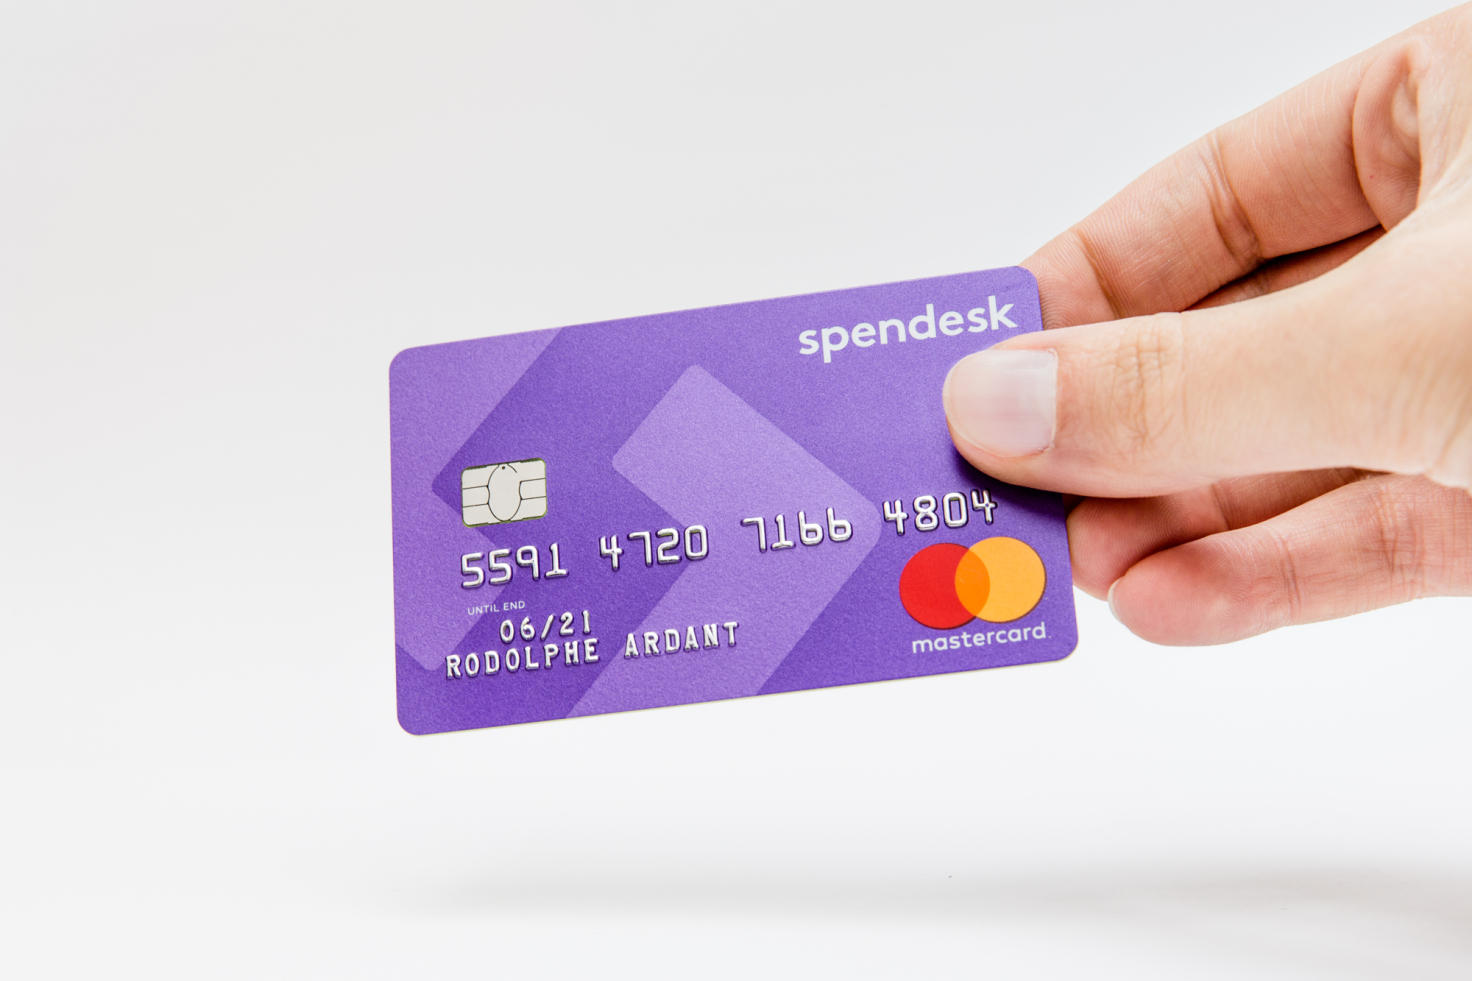 vlevle-spendesk-card